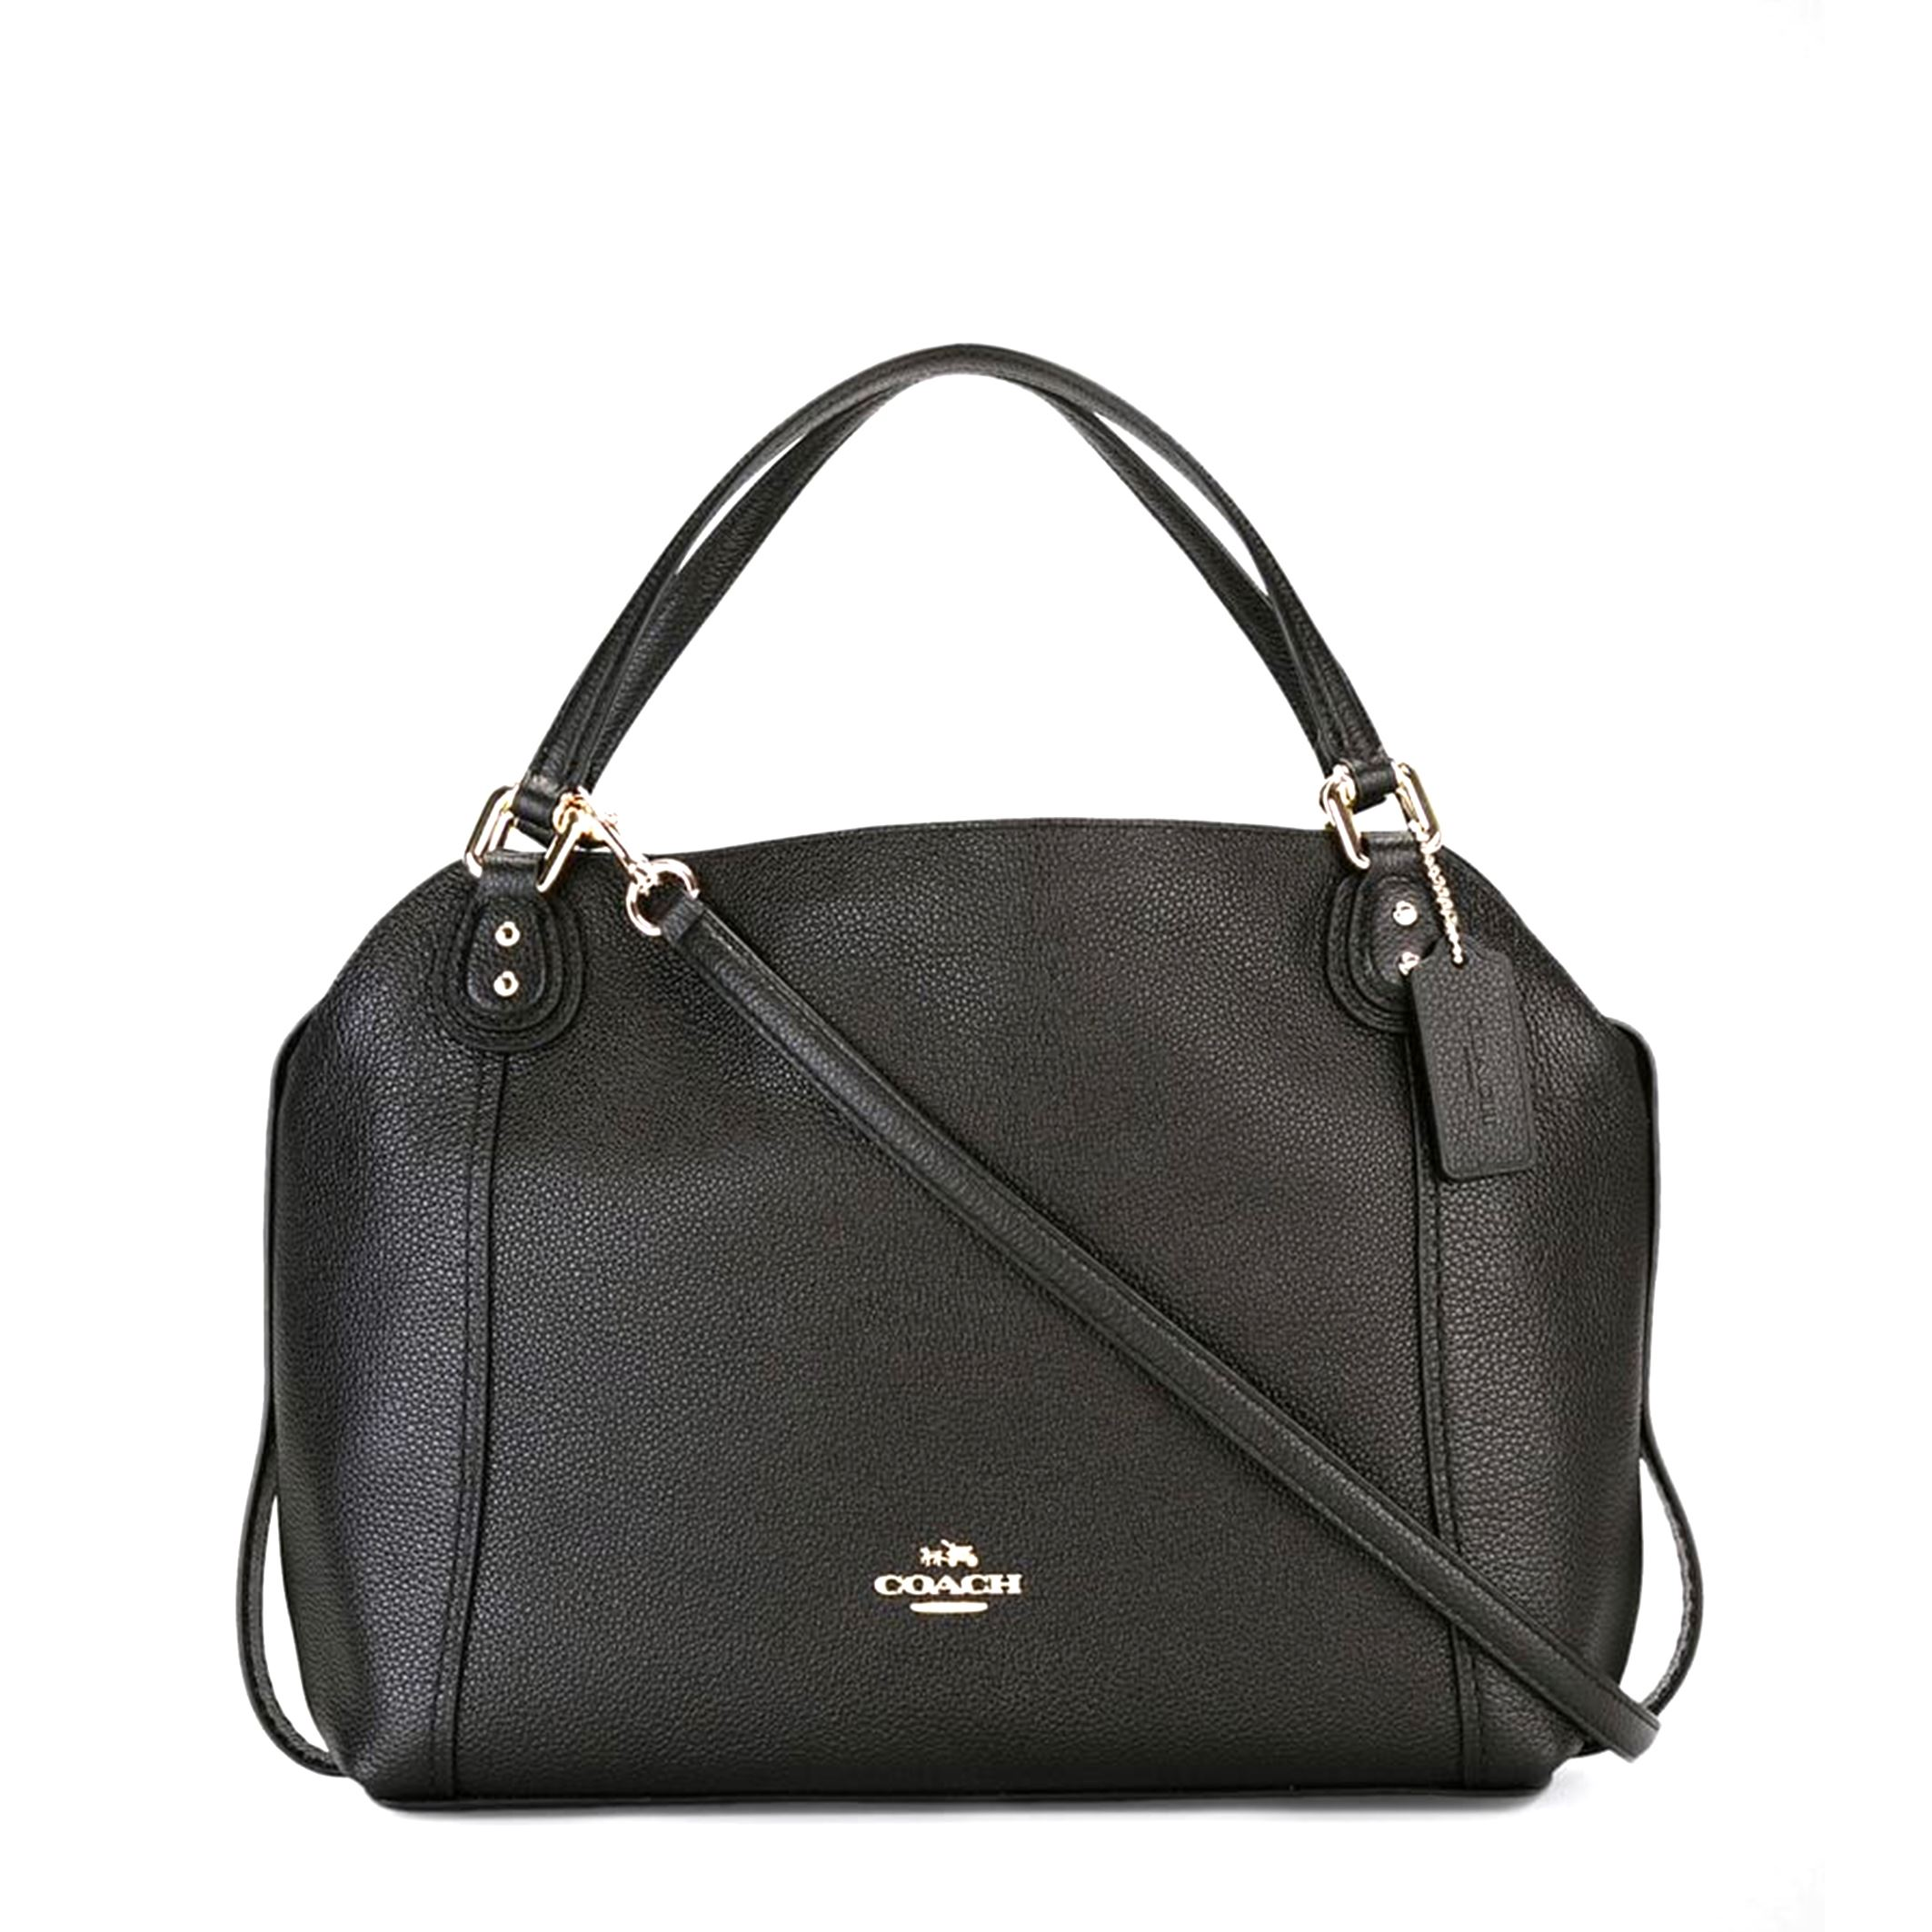 Details about Coach Women s Black Leather Handbag Metallic Fastening  Removable Strap Lined 6804443b13